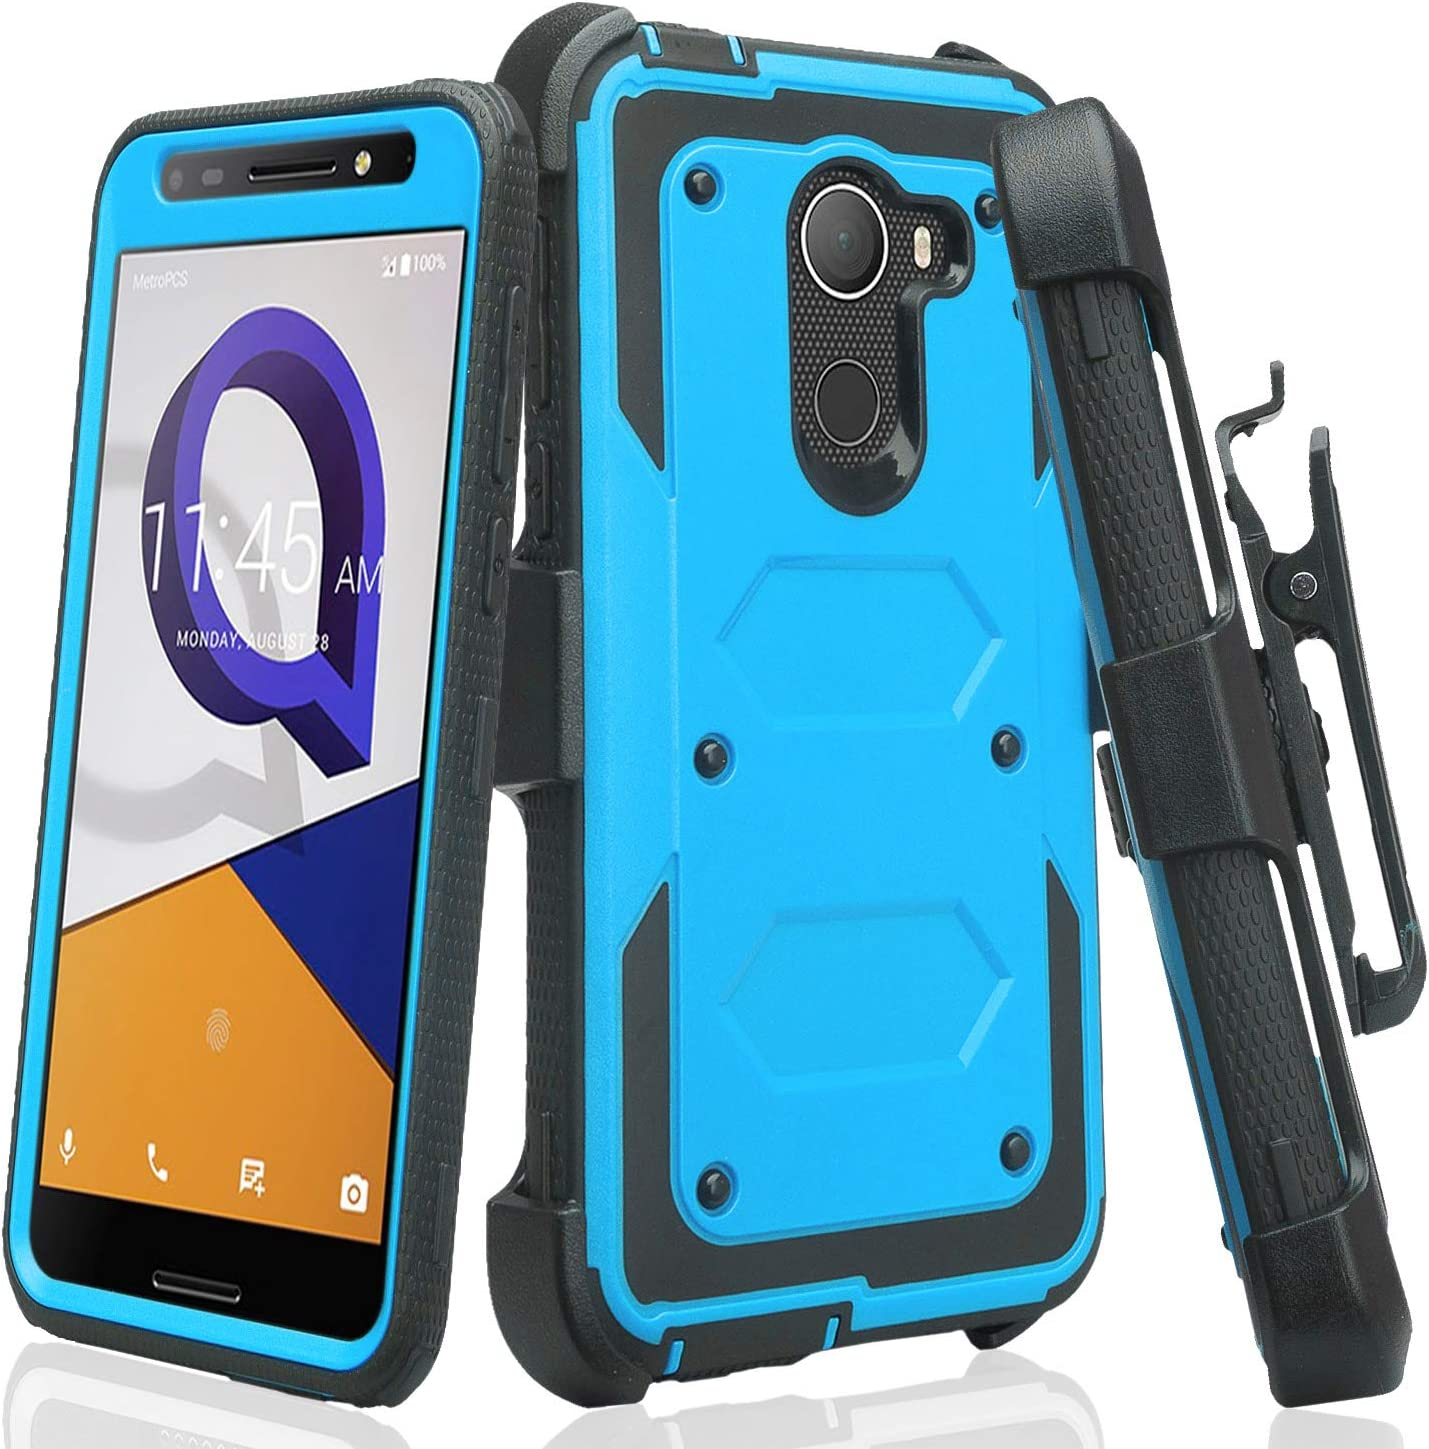 Jitterbug Smart 2 Case Belt Clip Holster[GW USA] Shock Proof Dual Layer Hard Case w/ [Built in Screen Protector] Full Body Protection Phone Case - Blue